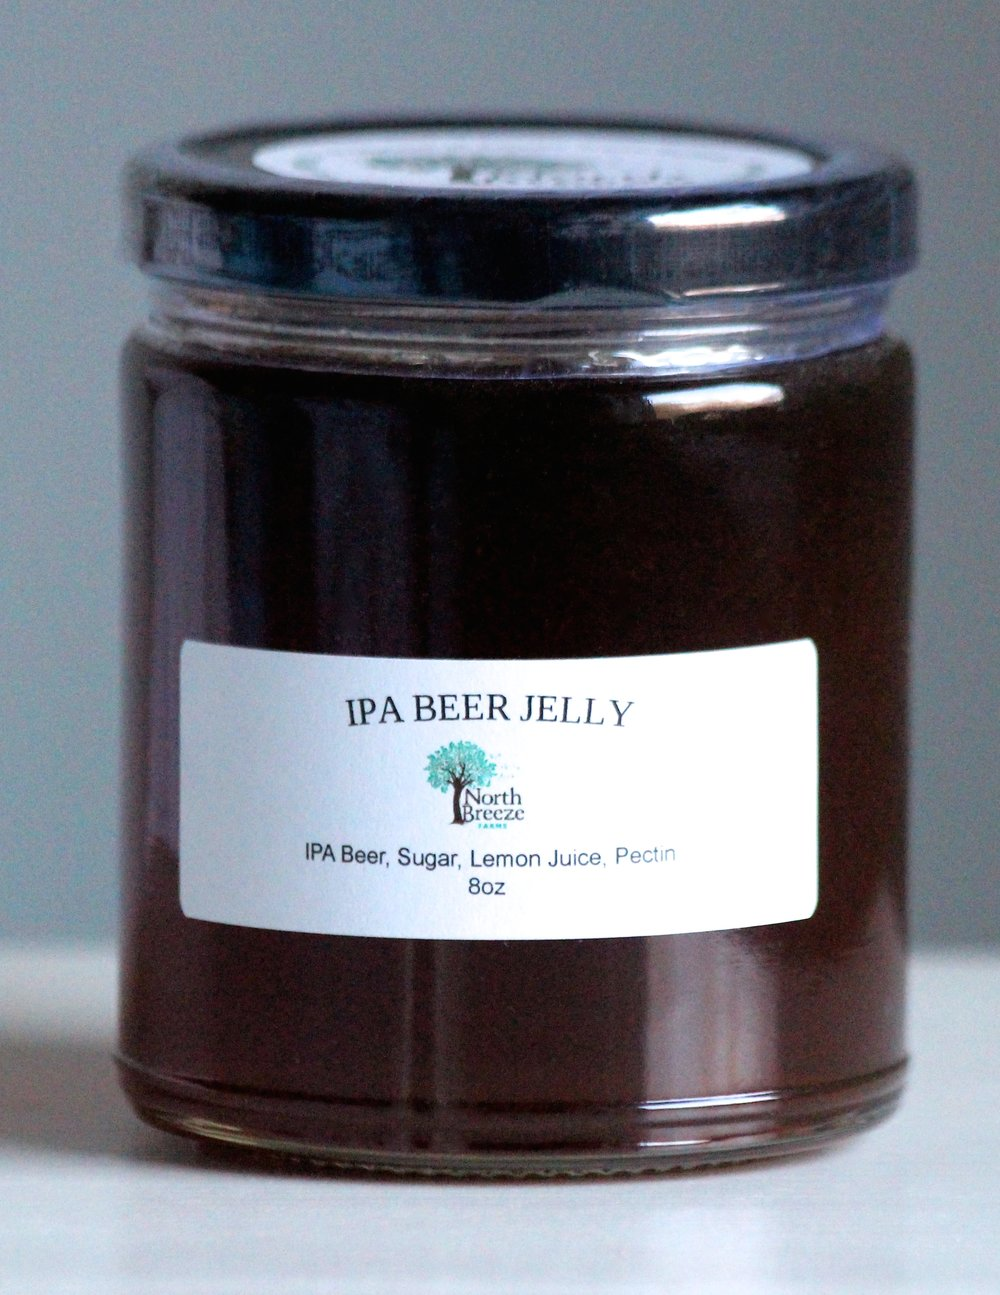 IPA Beer Jelly $12